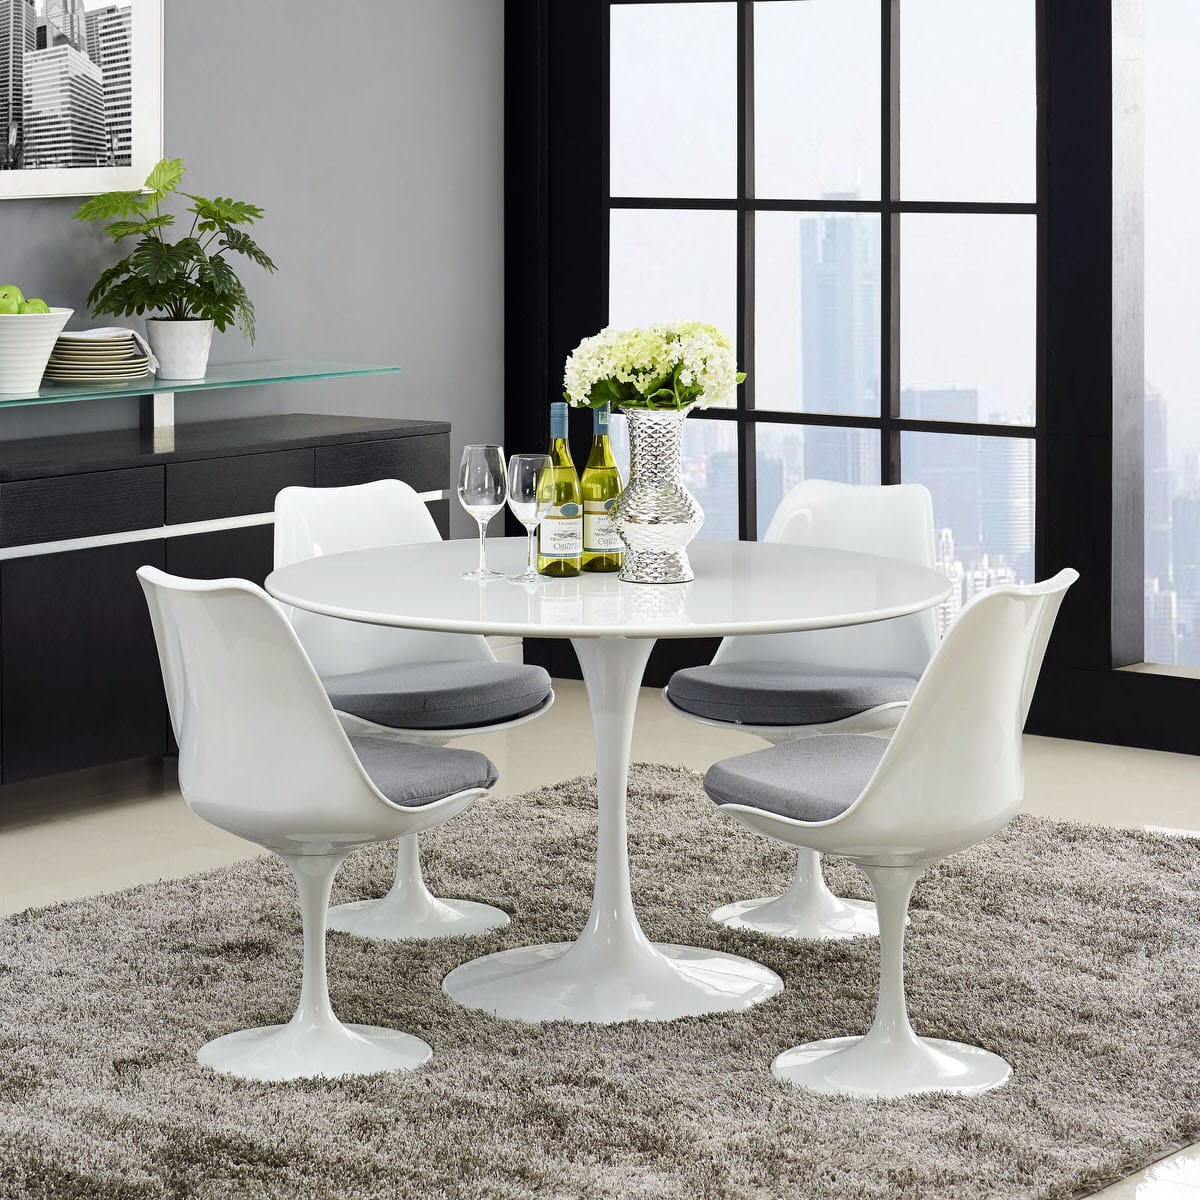 Lippa 47 Inch Round Wood Top Dining Table White By Modern Living